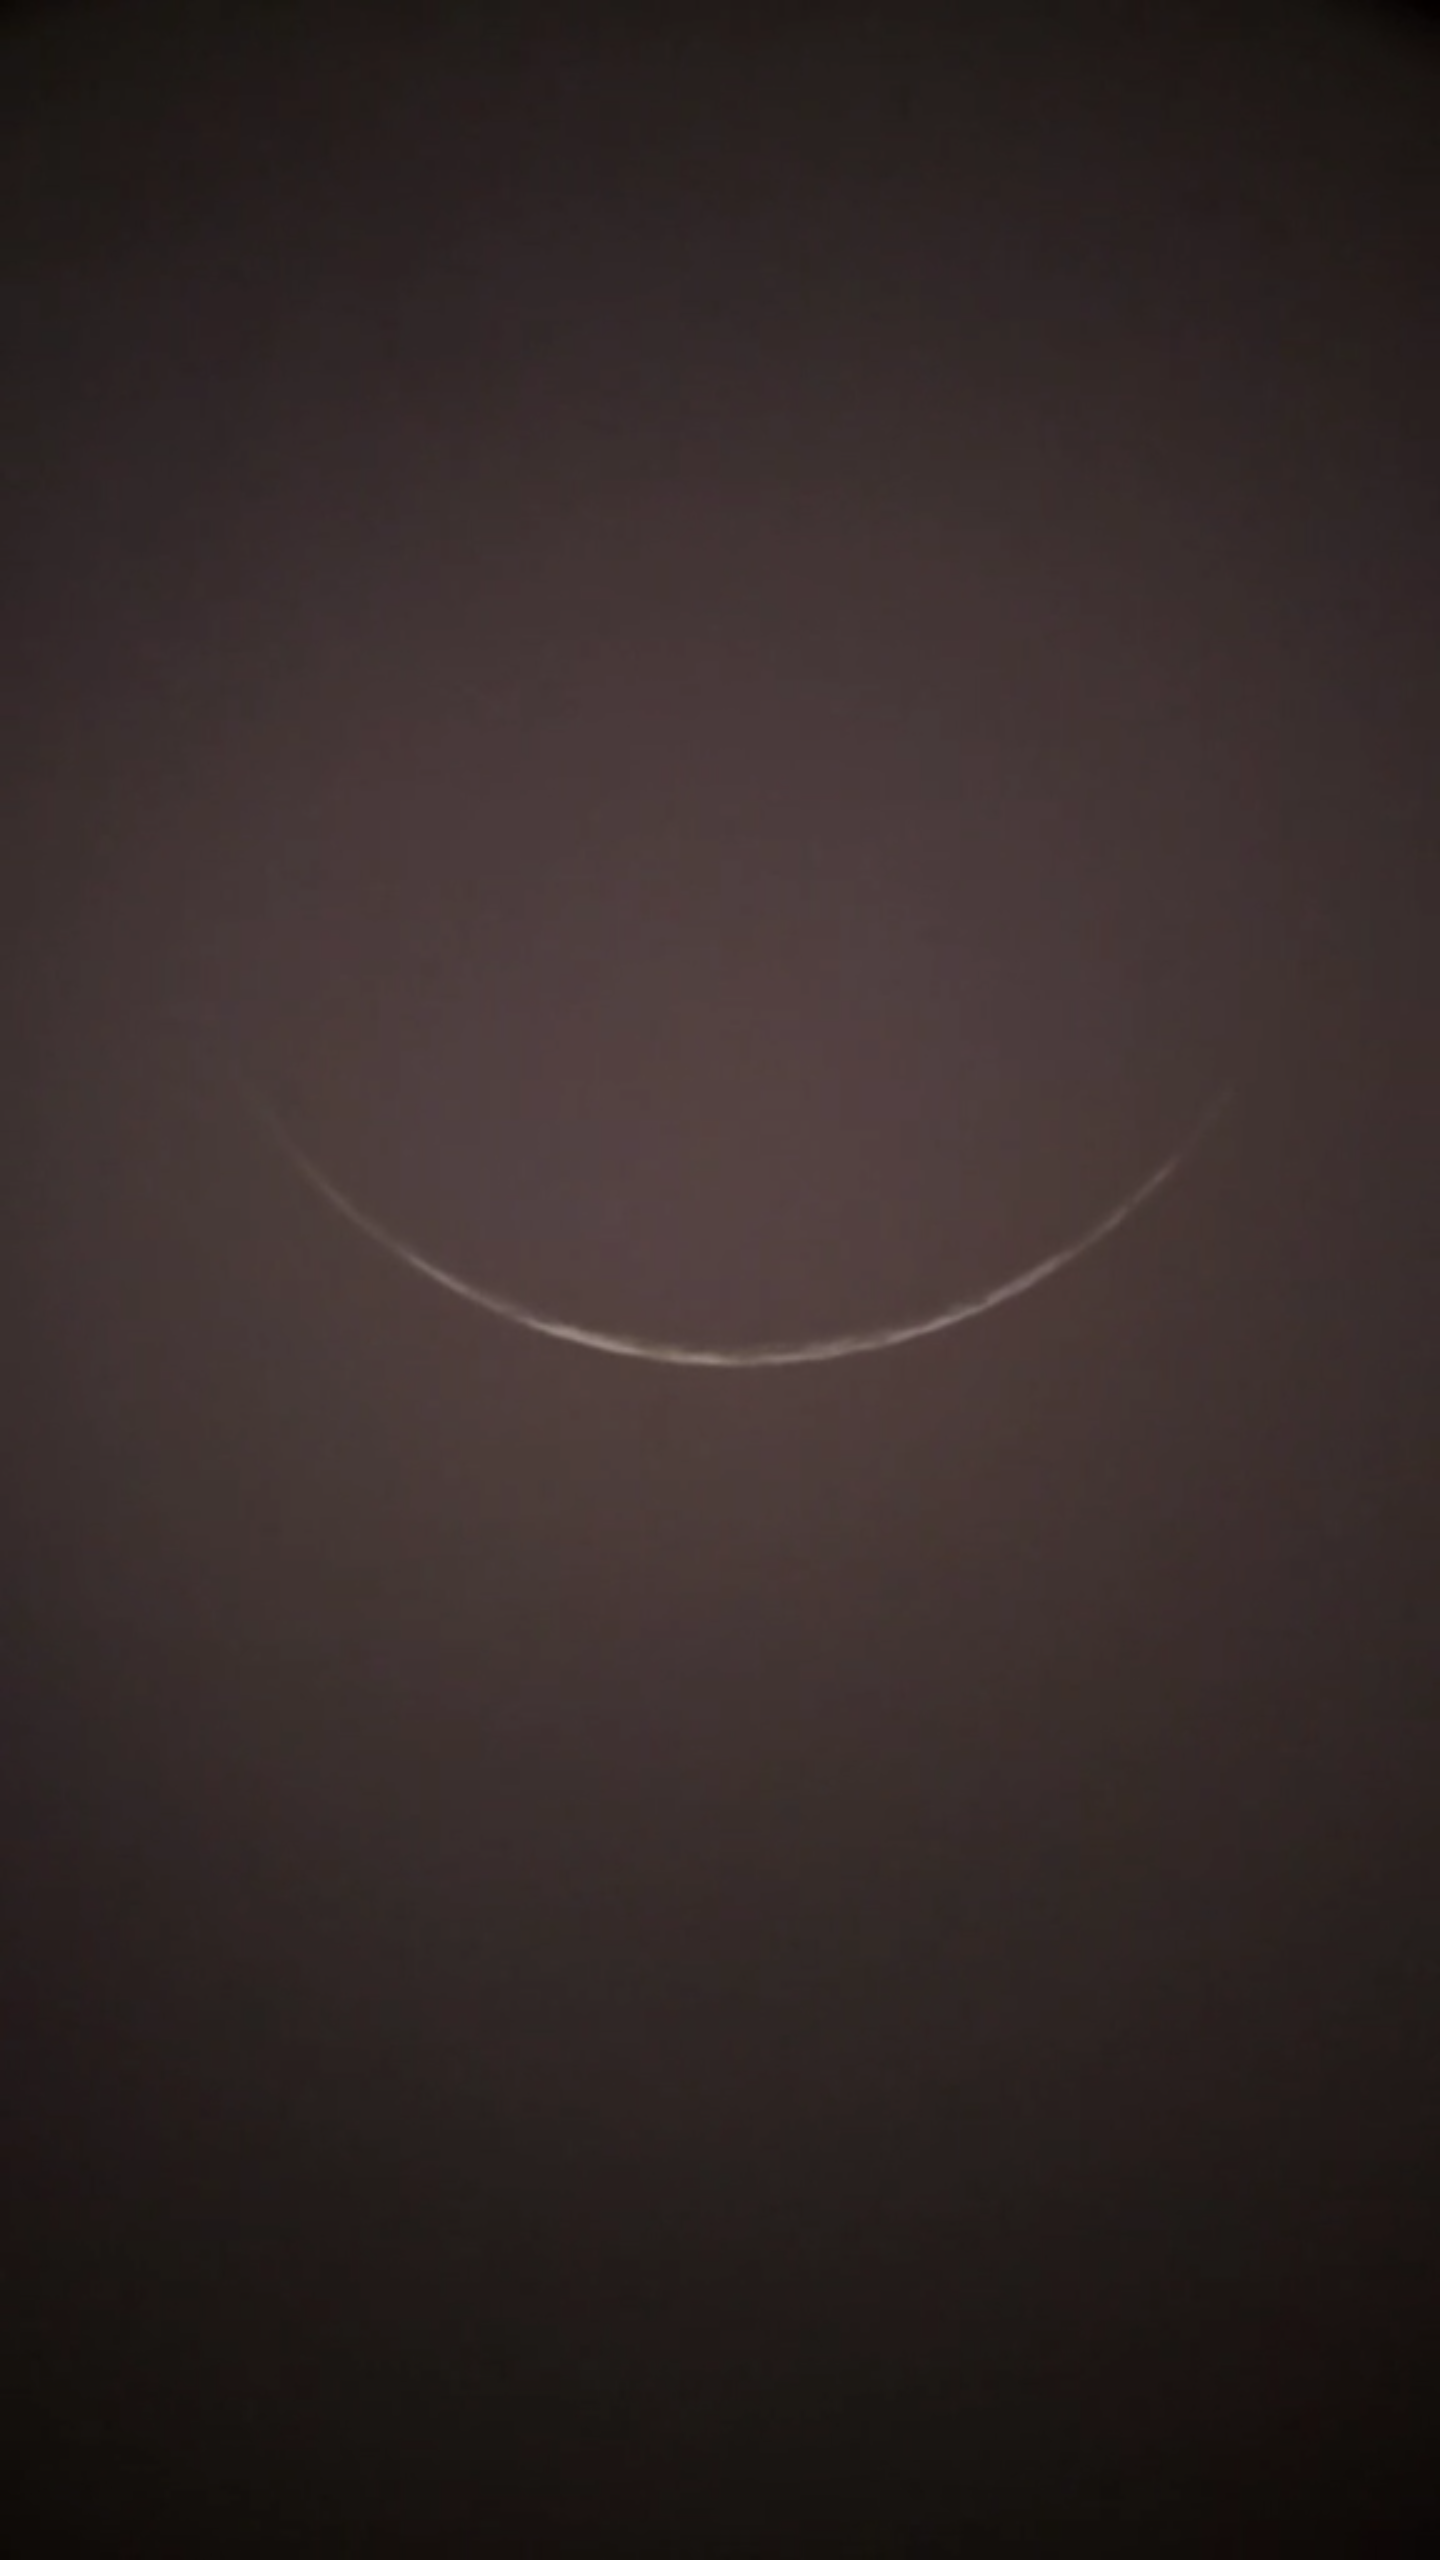 Photo of crescent moon of 1 Muharram 1441 AH from Cirebon, Indonesia visible on Saturday, 31 Agustus 2019 CE.